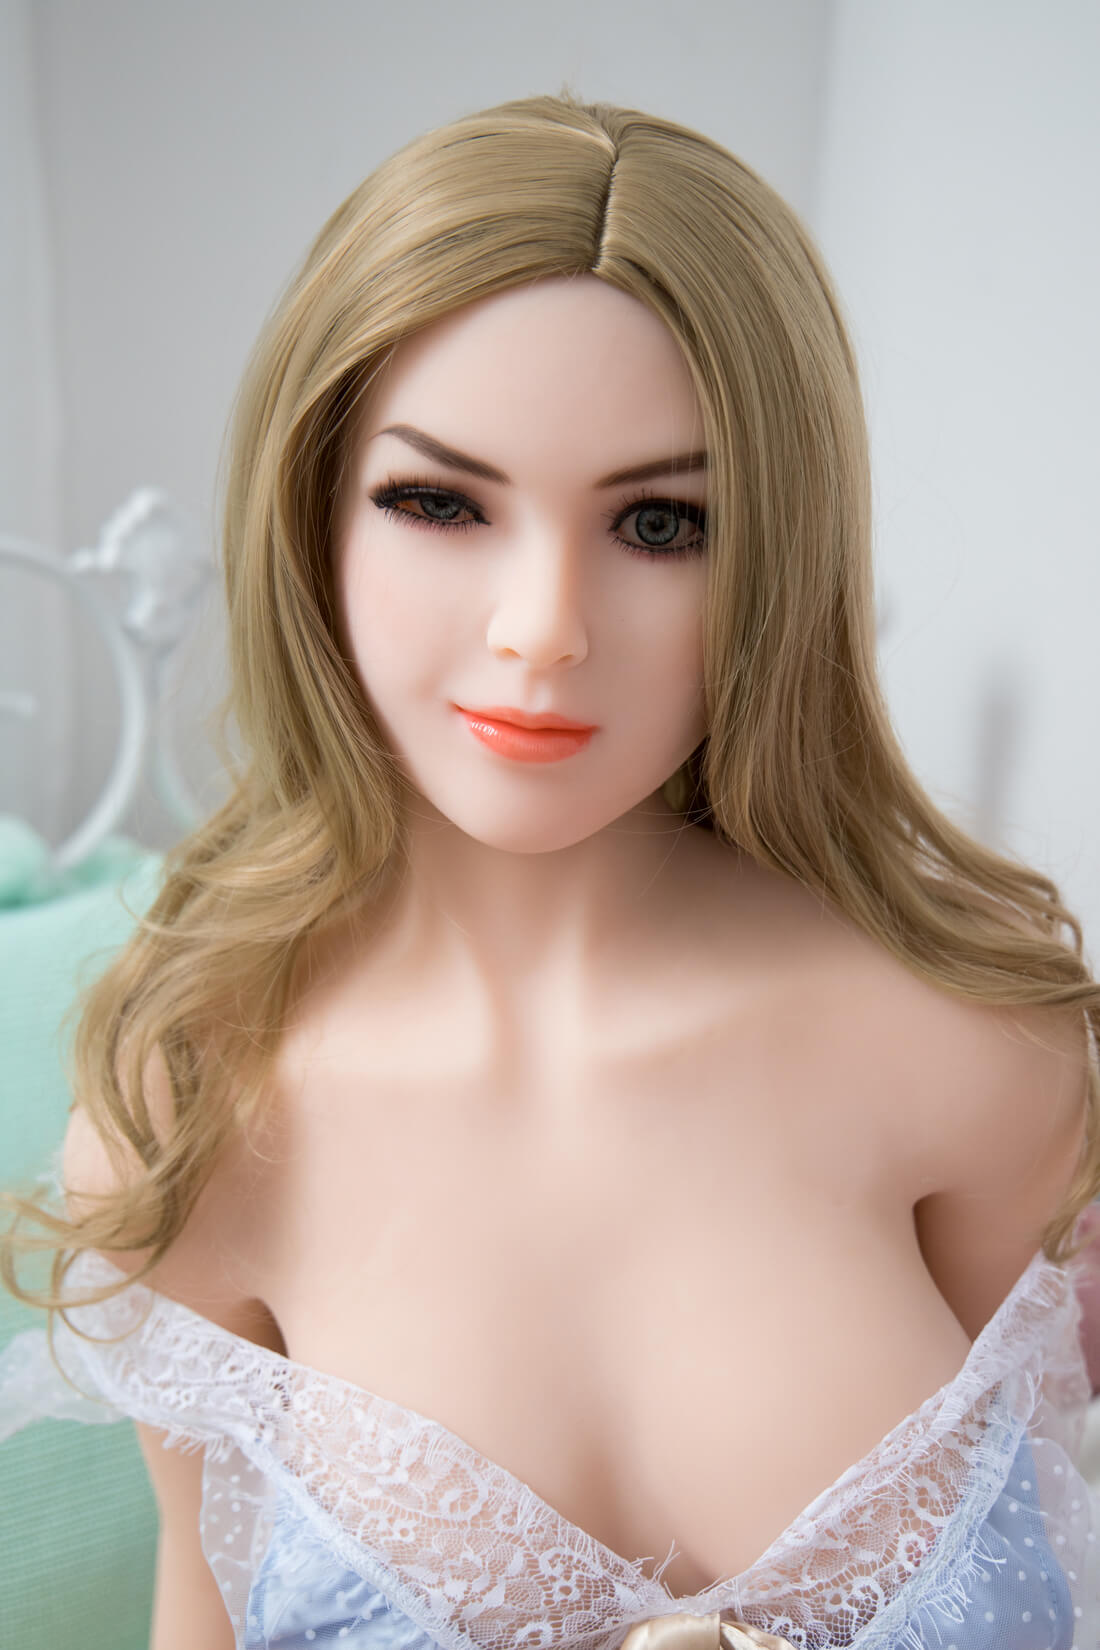 168cm (5 ft 5 in) AI Robotic Sex Doll - Calithea